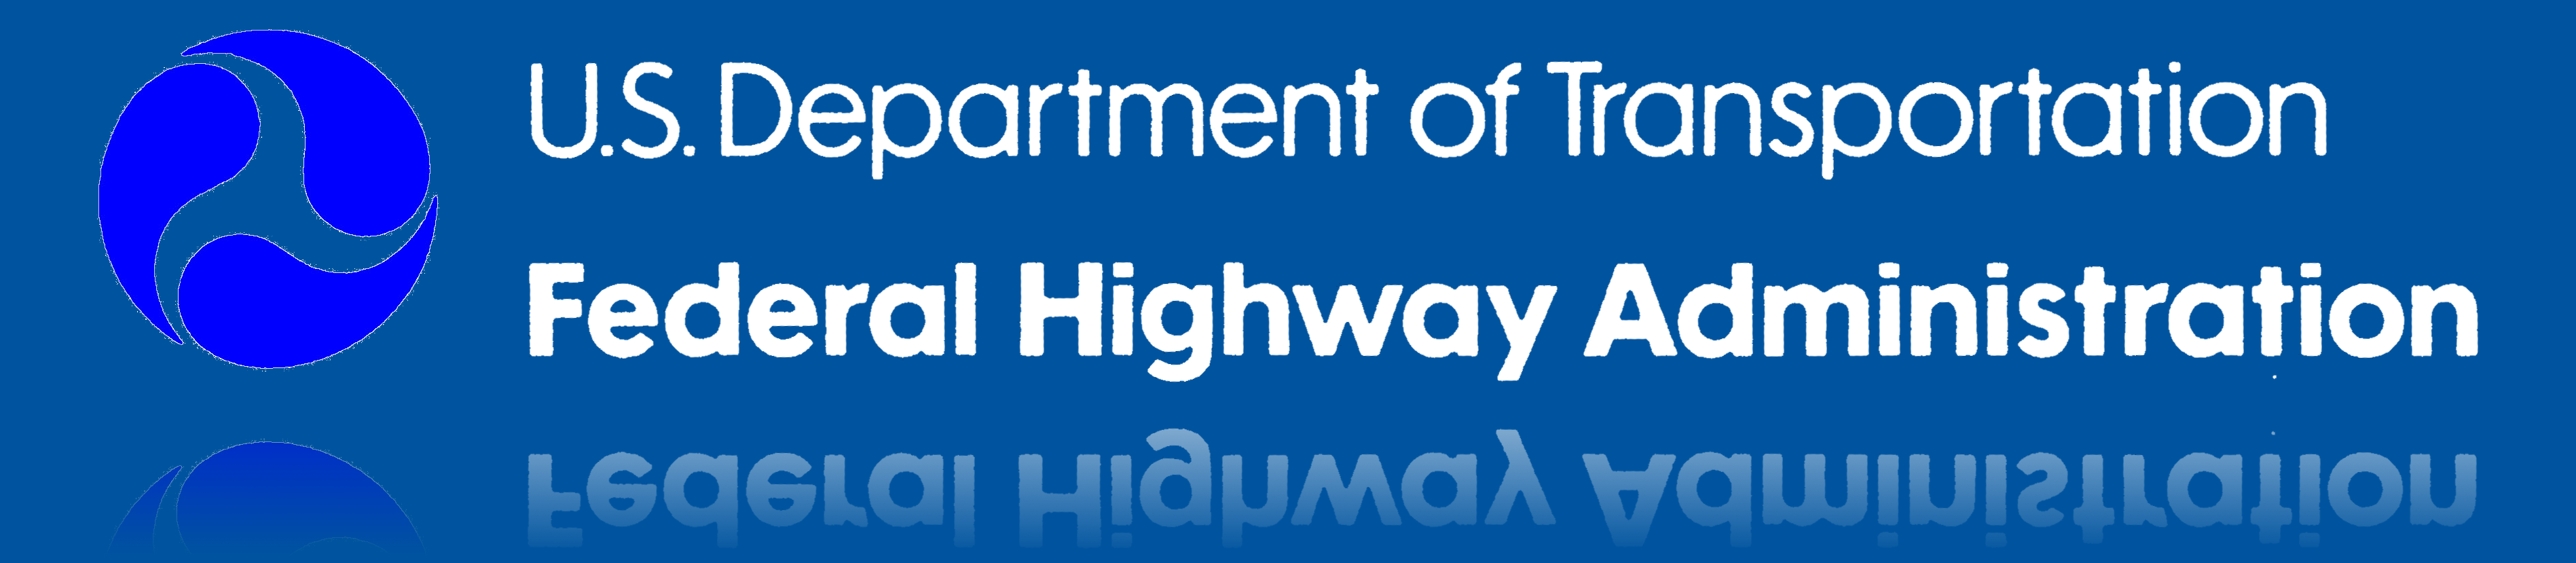 FHWA ReflectionBackground.png